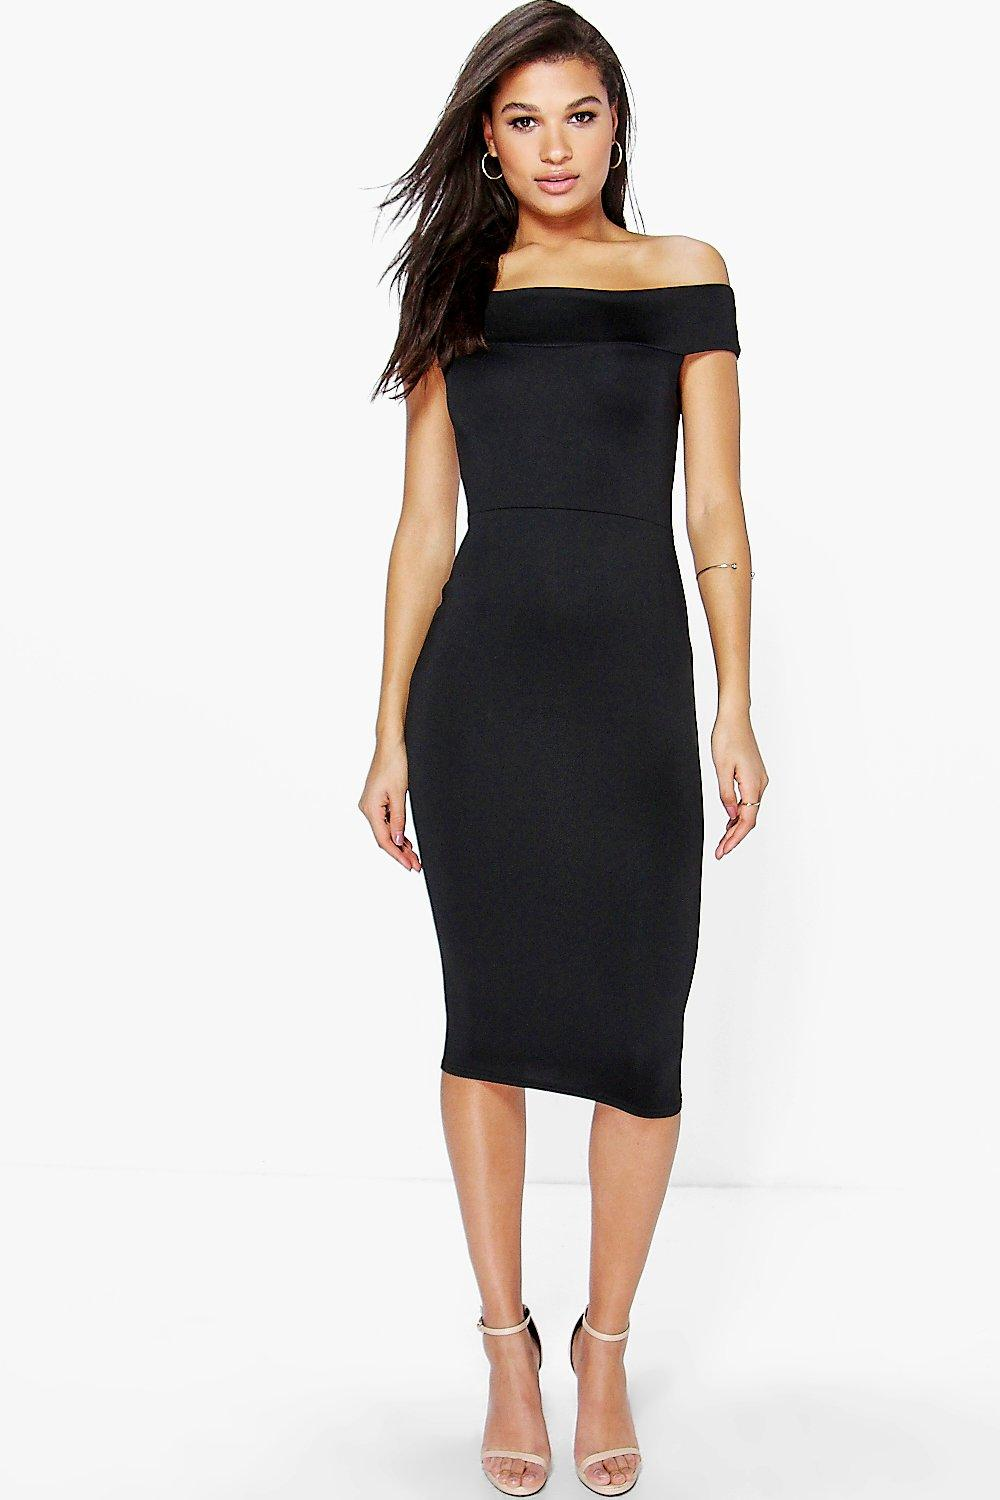 Tamsin Off The Shoulder Midi Bodycon Dress - black